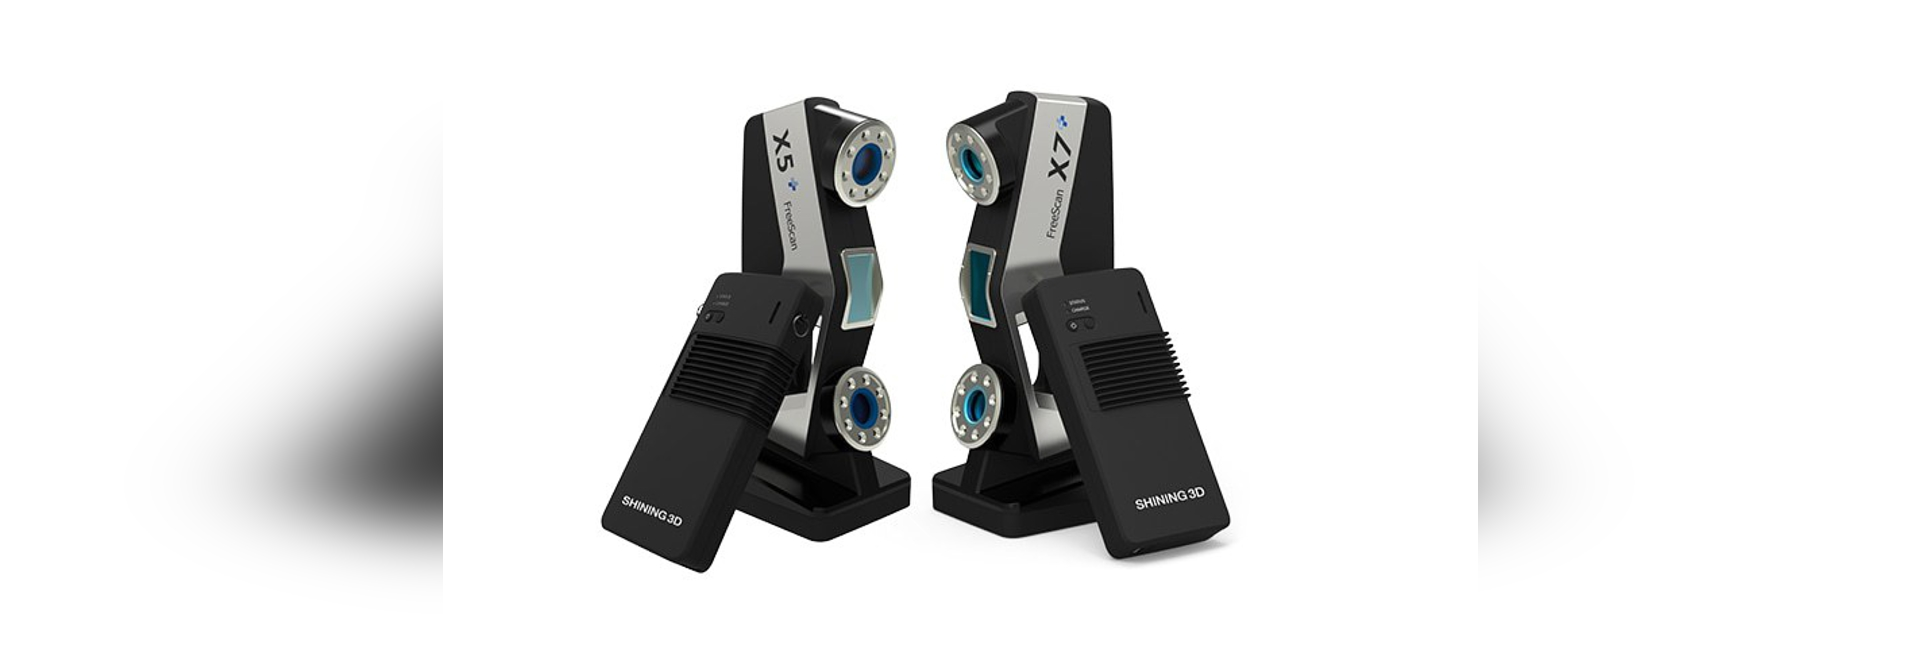 Wireless FreeScan X5+ & X7+, SHINING 3D's First Wireless Laser Handheld 3D Scanners